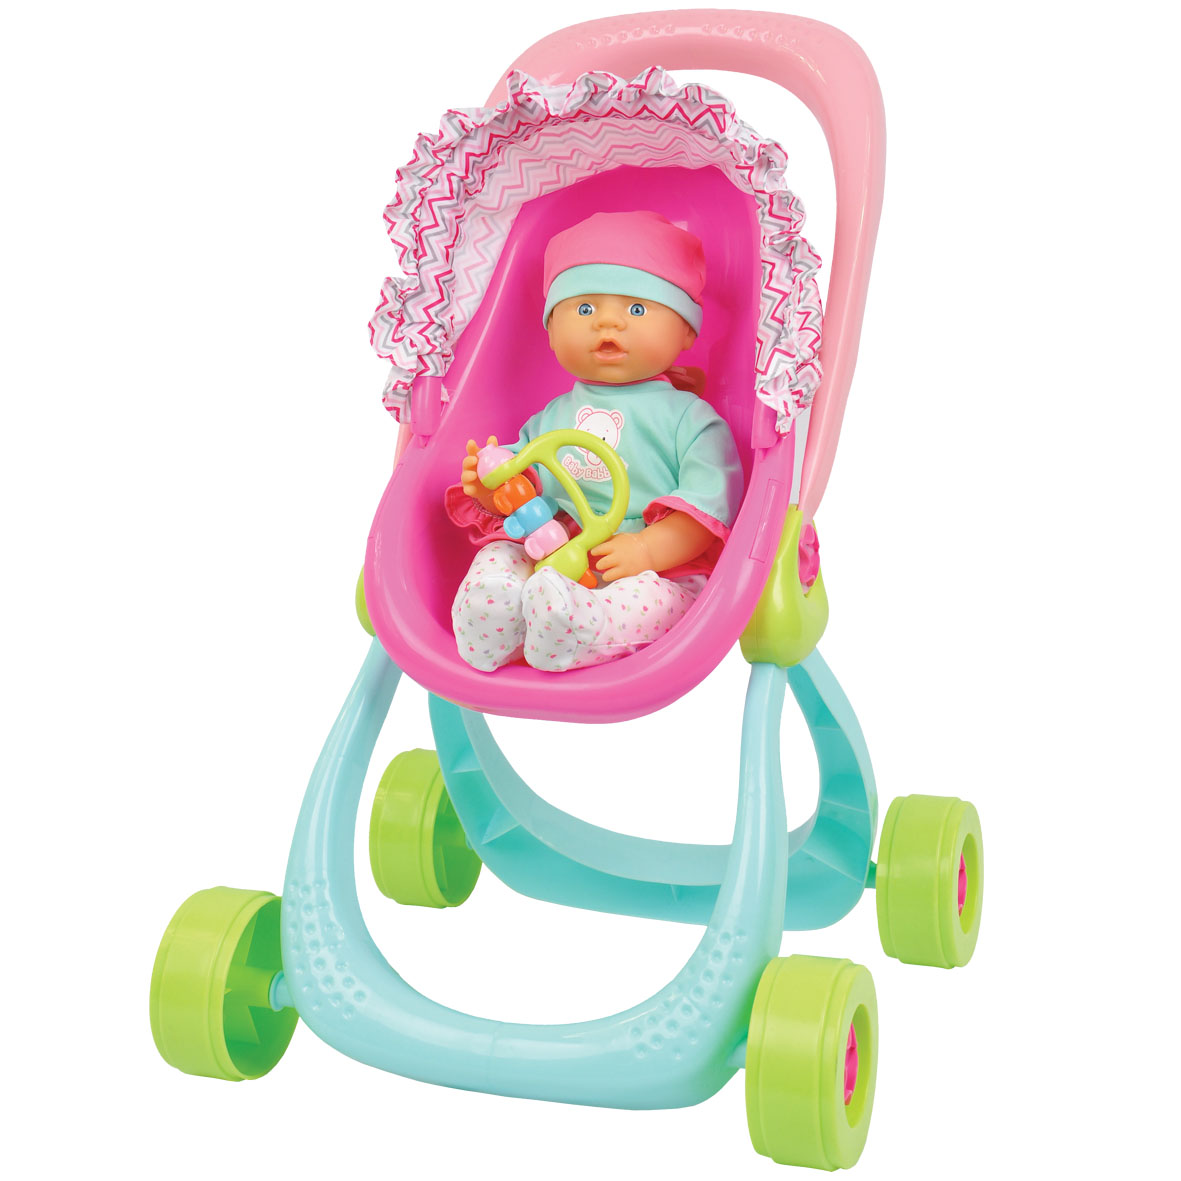 Baby Babbles Stroller & Baby